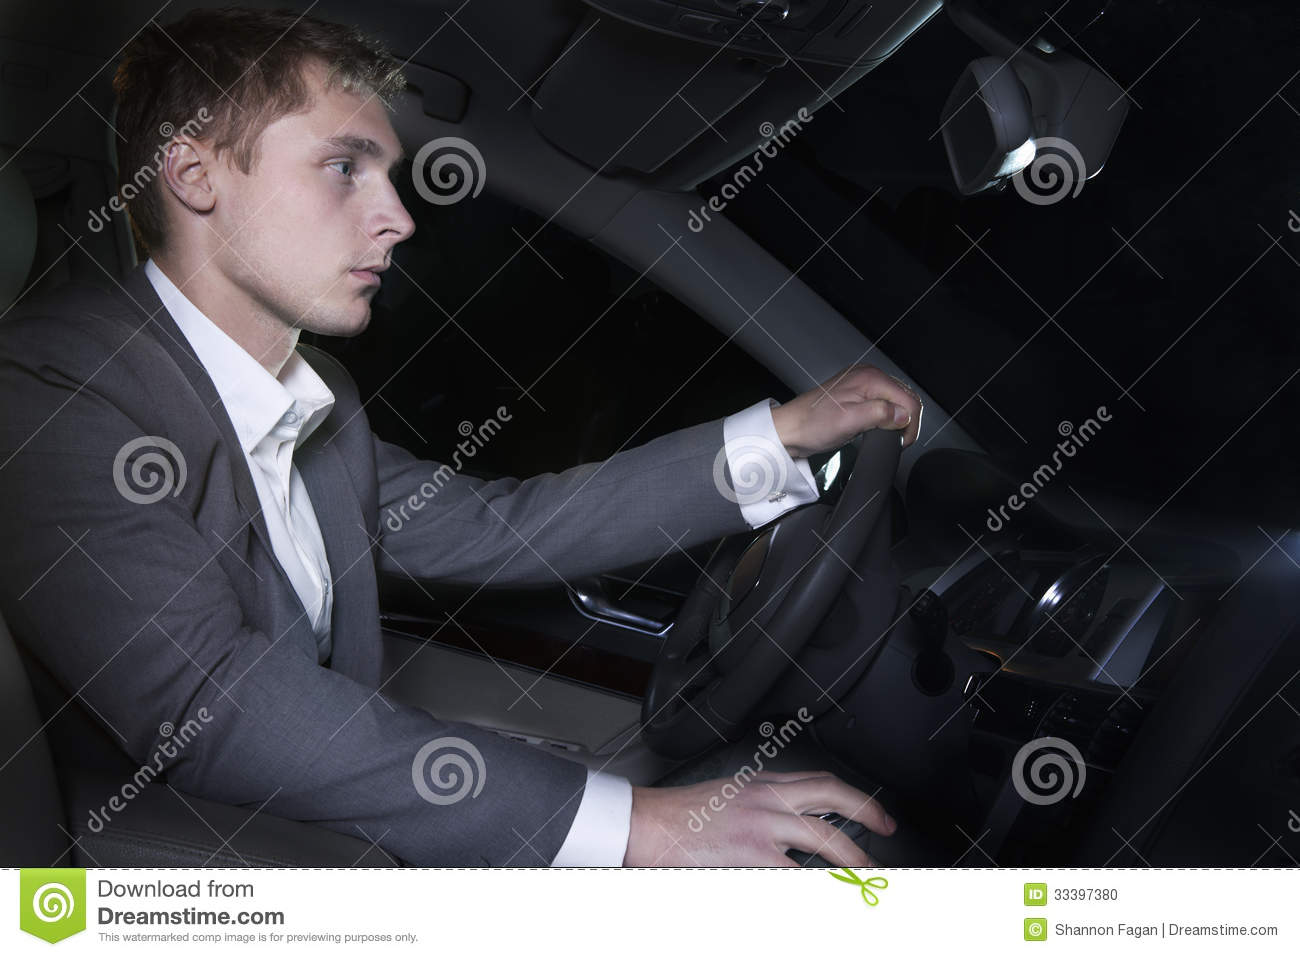 young welldressed man in a suit is sitting in his car